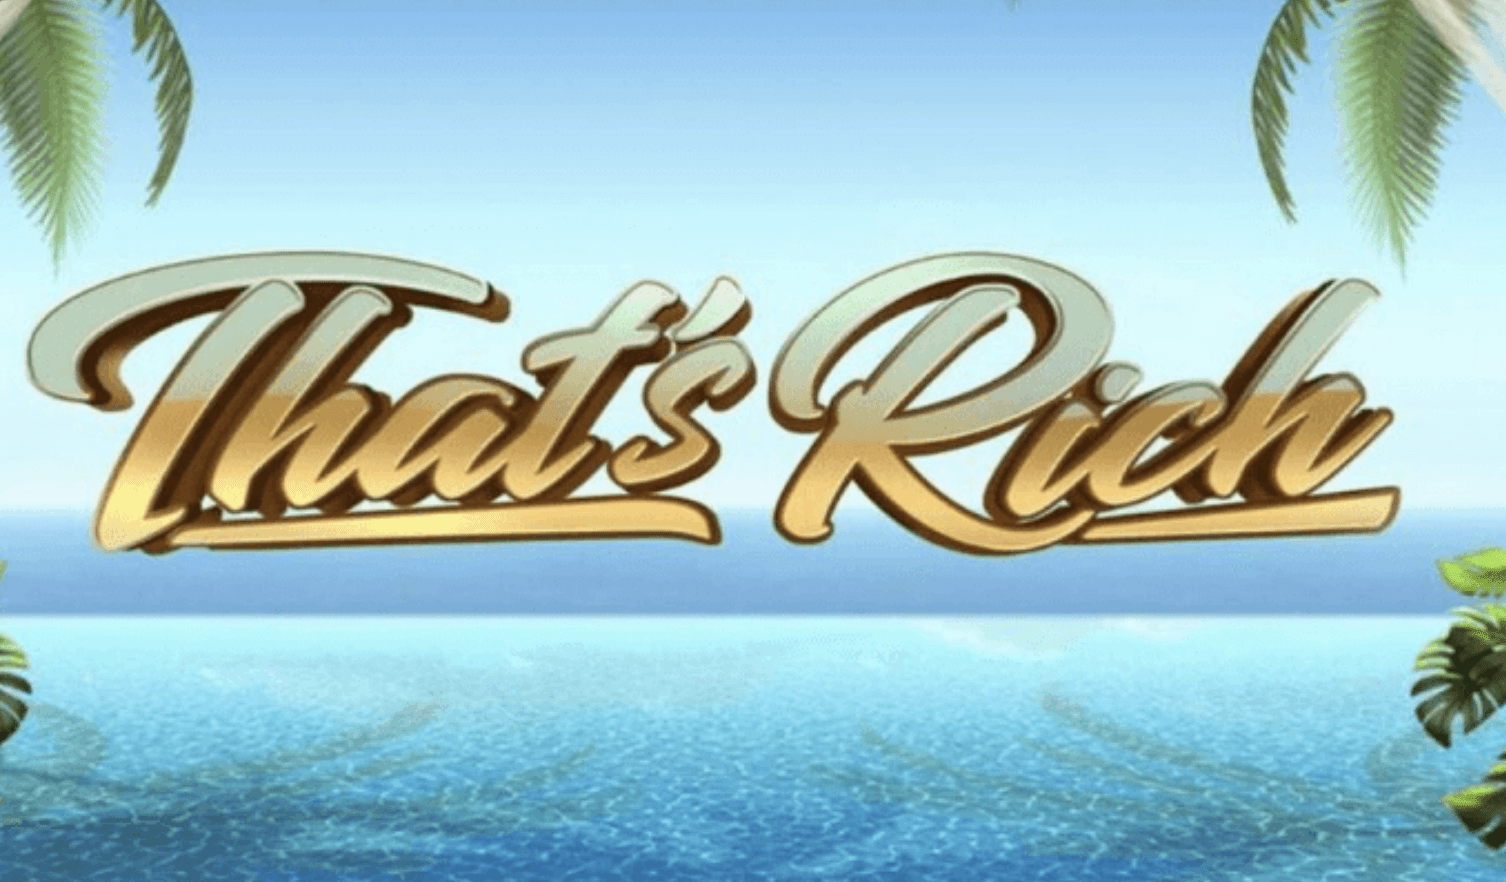 That's Rich - Online Casino UK